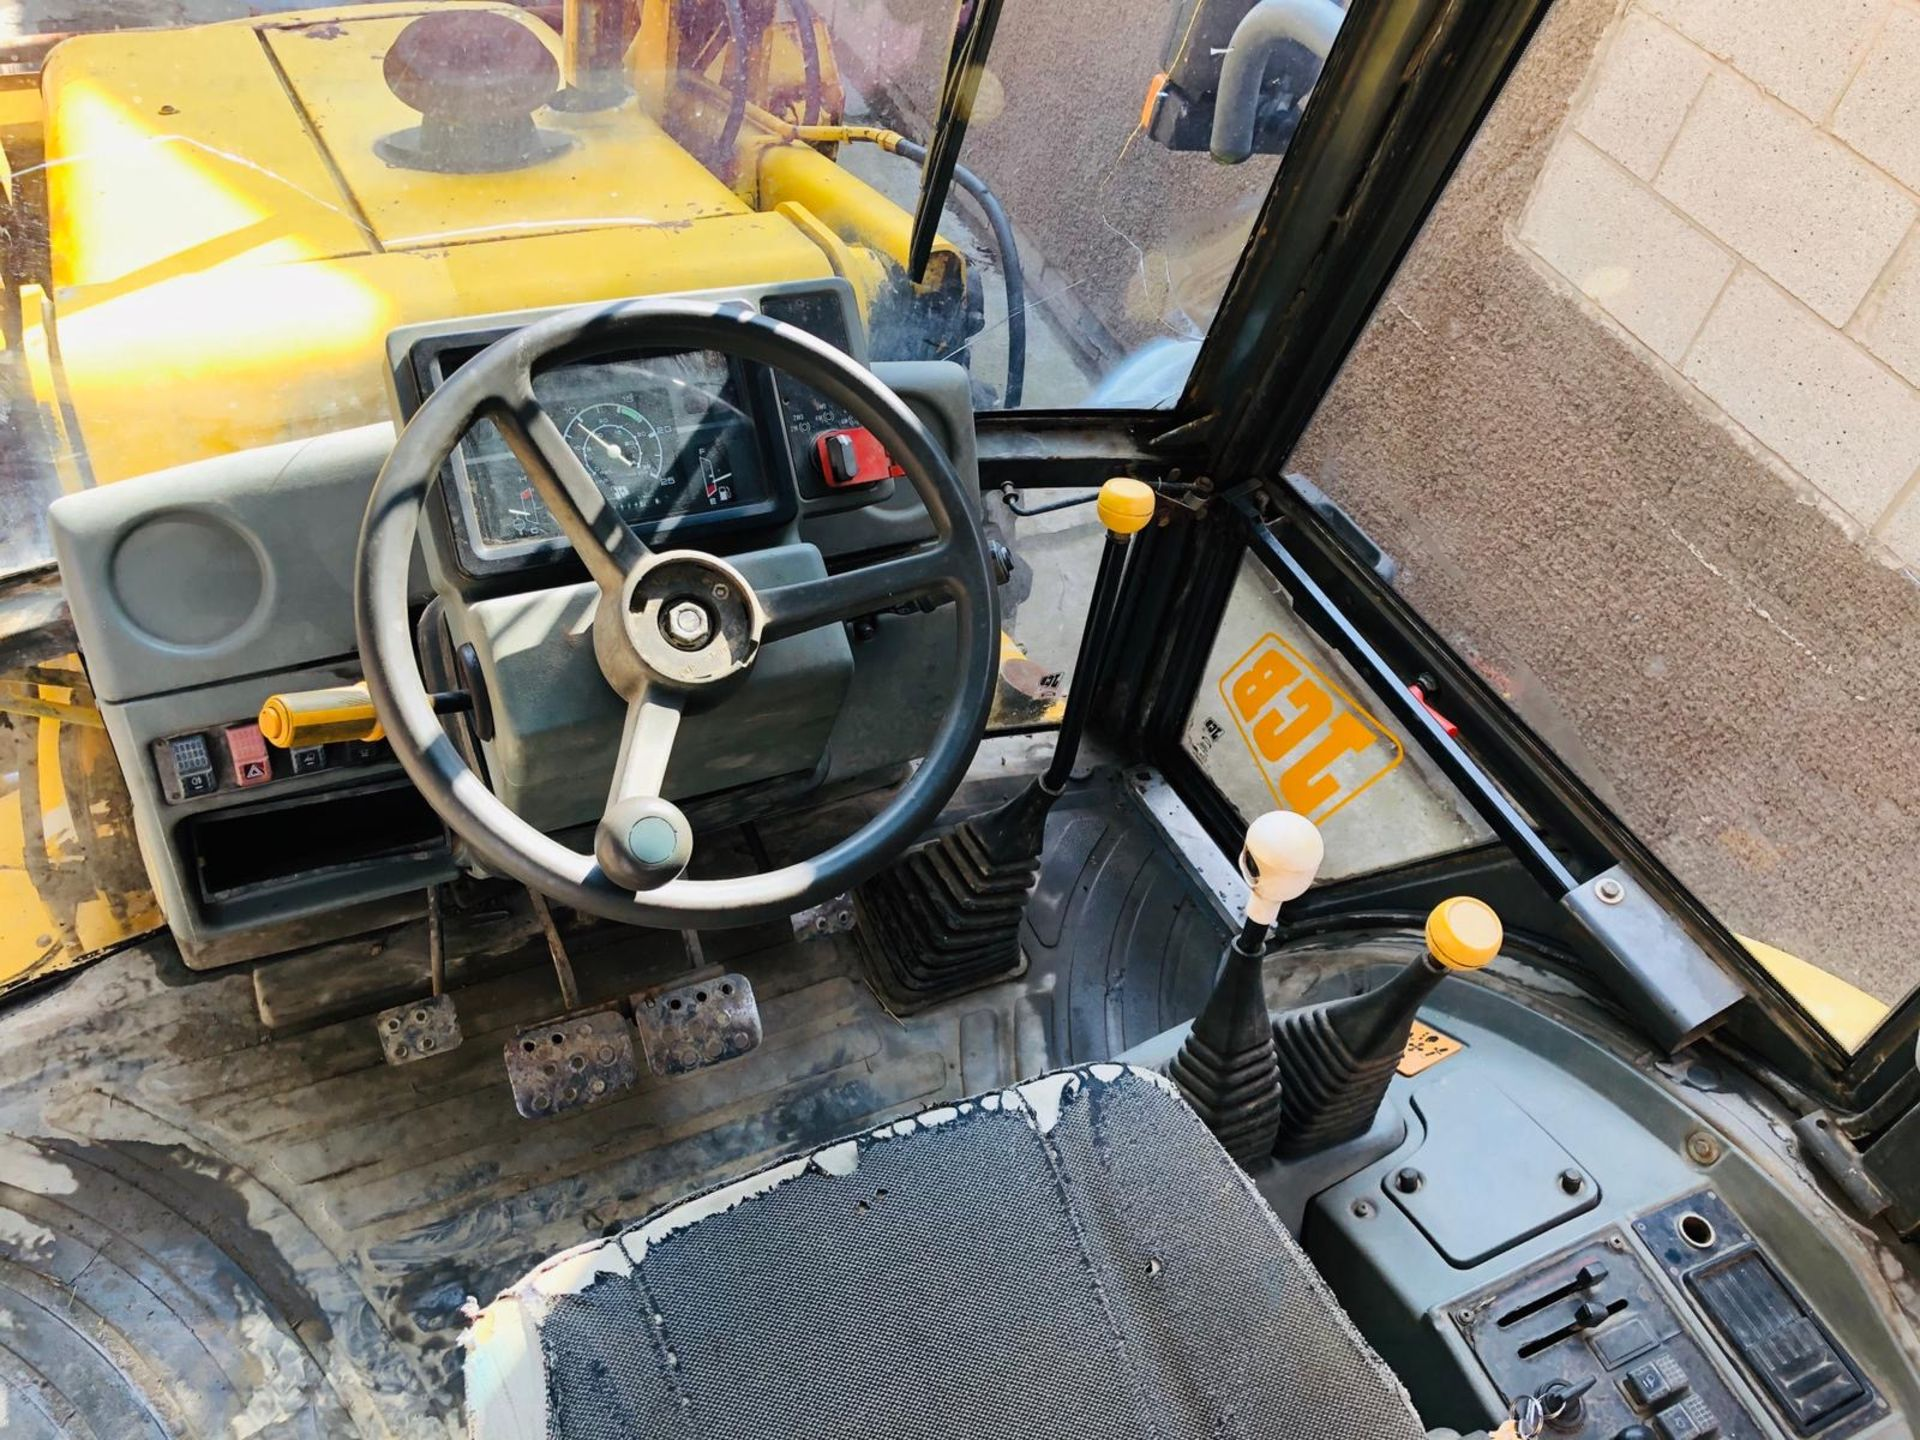 JCB 3CX PROJECT 8 DIGGER, 4X4, EXTRA DIG, C/W 3 BUCKETS, HOURS FROM NEW 7434 ONLY *NO VAT* - Image 6 of 16